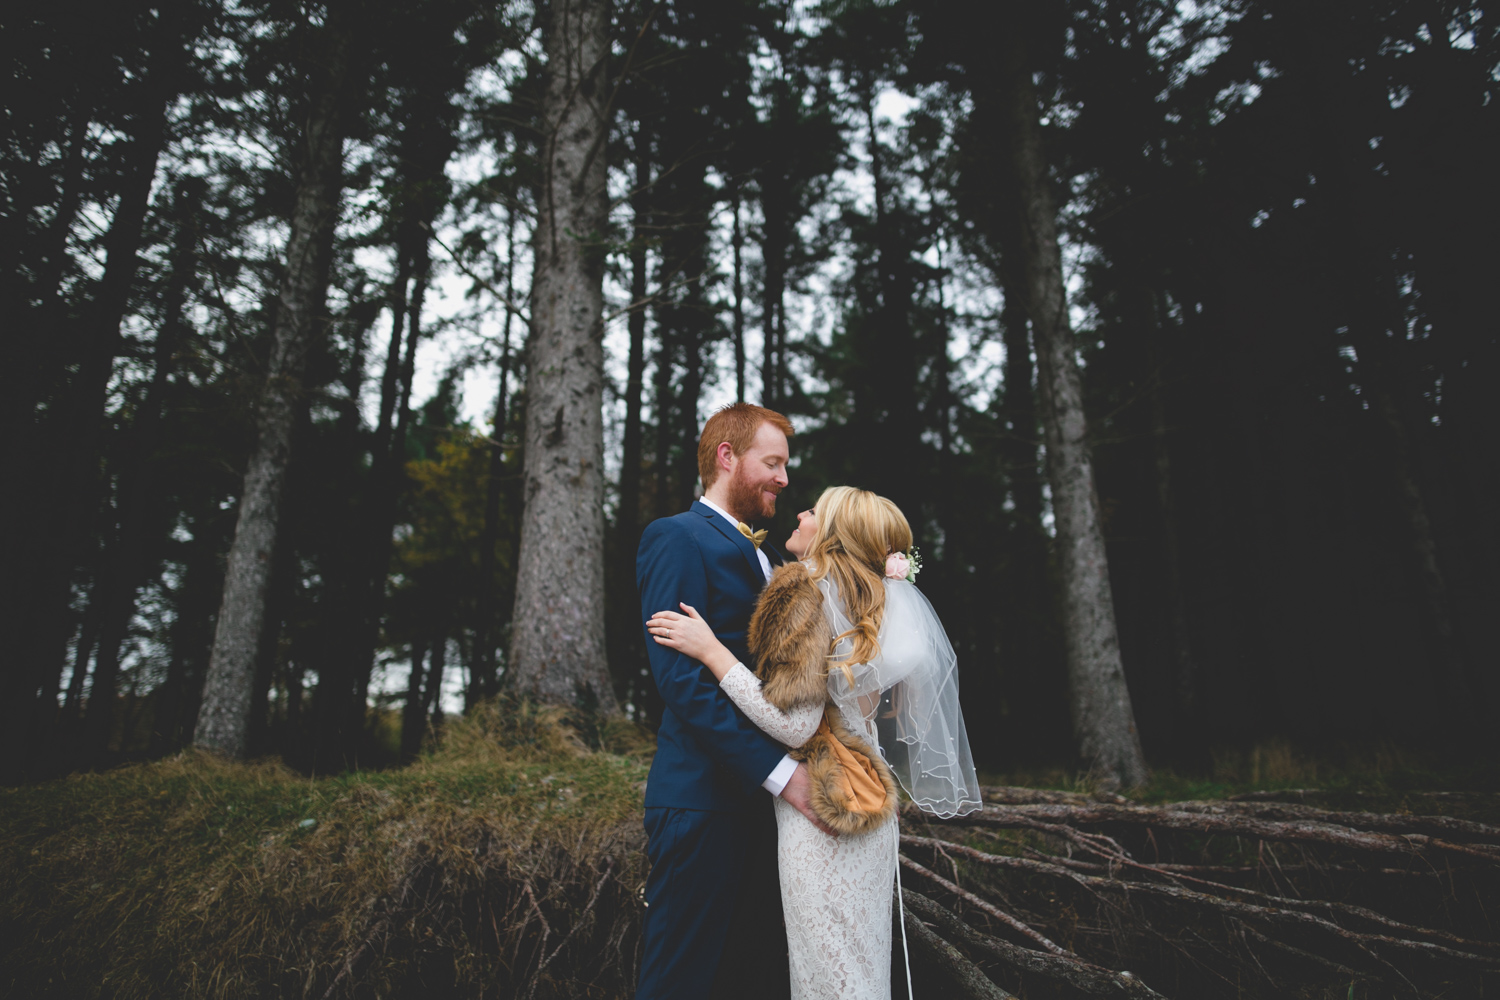 Caroline Mc Nally at Wild Things Wed Photography wedding portraits